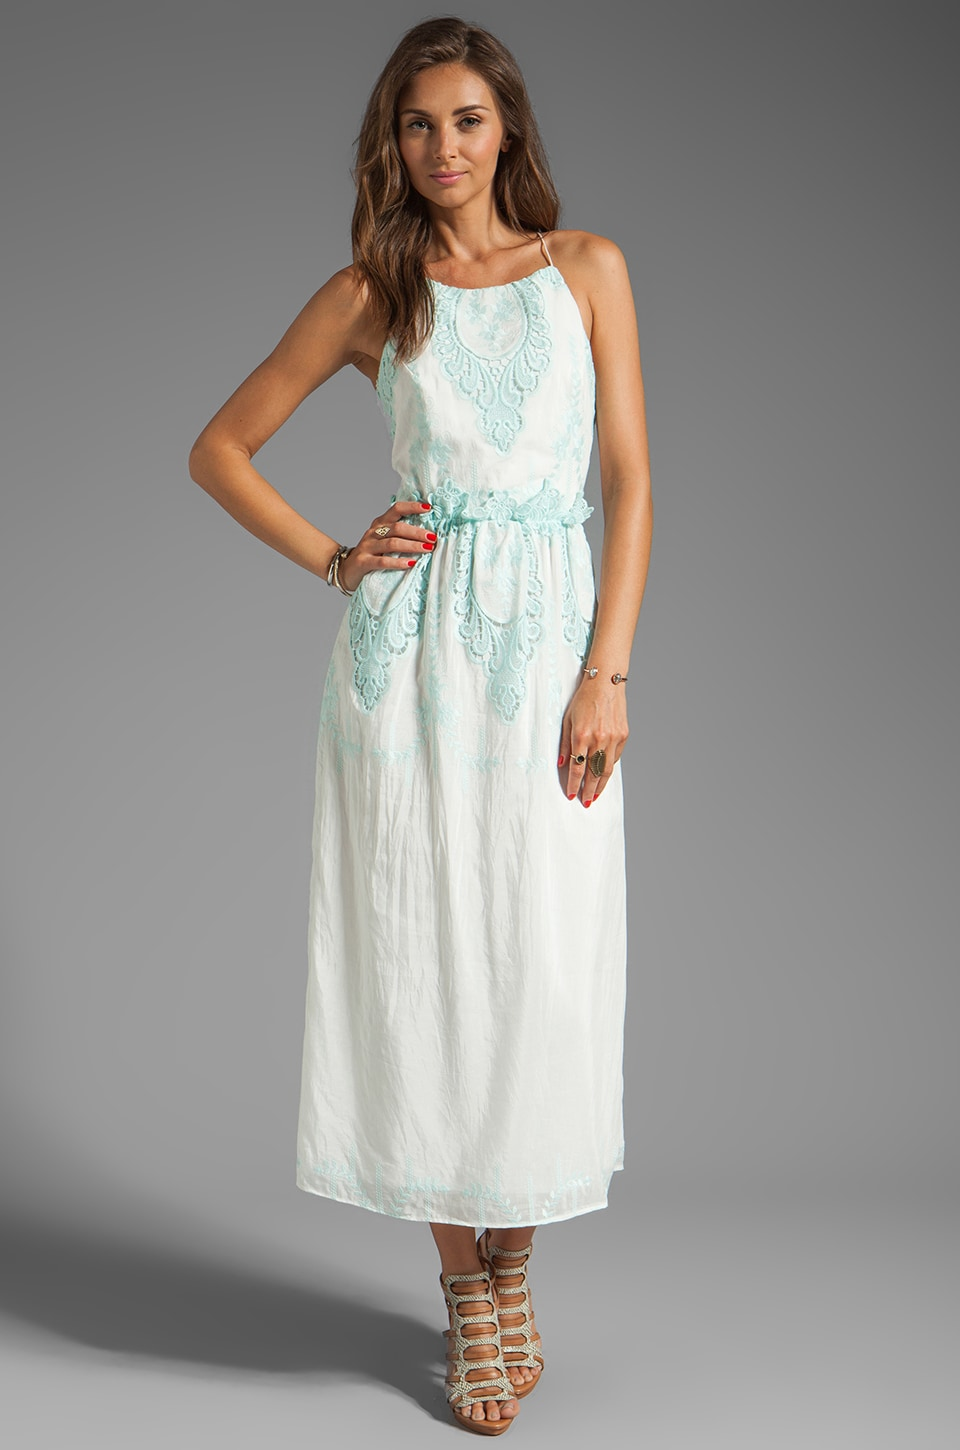 Dolce Vita Rayan Petticoat Embroidery Maxi Dress in White/Mint